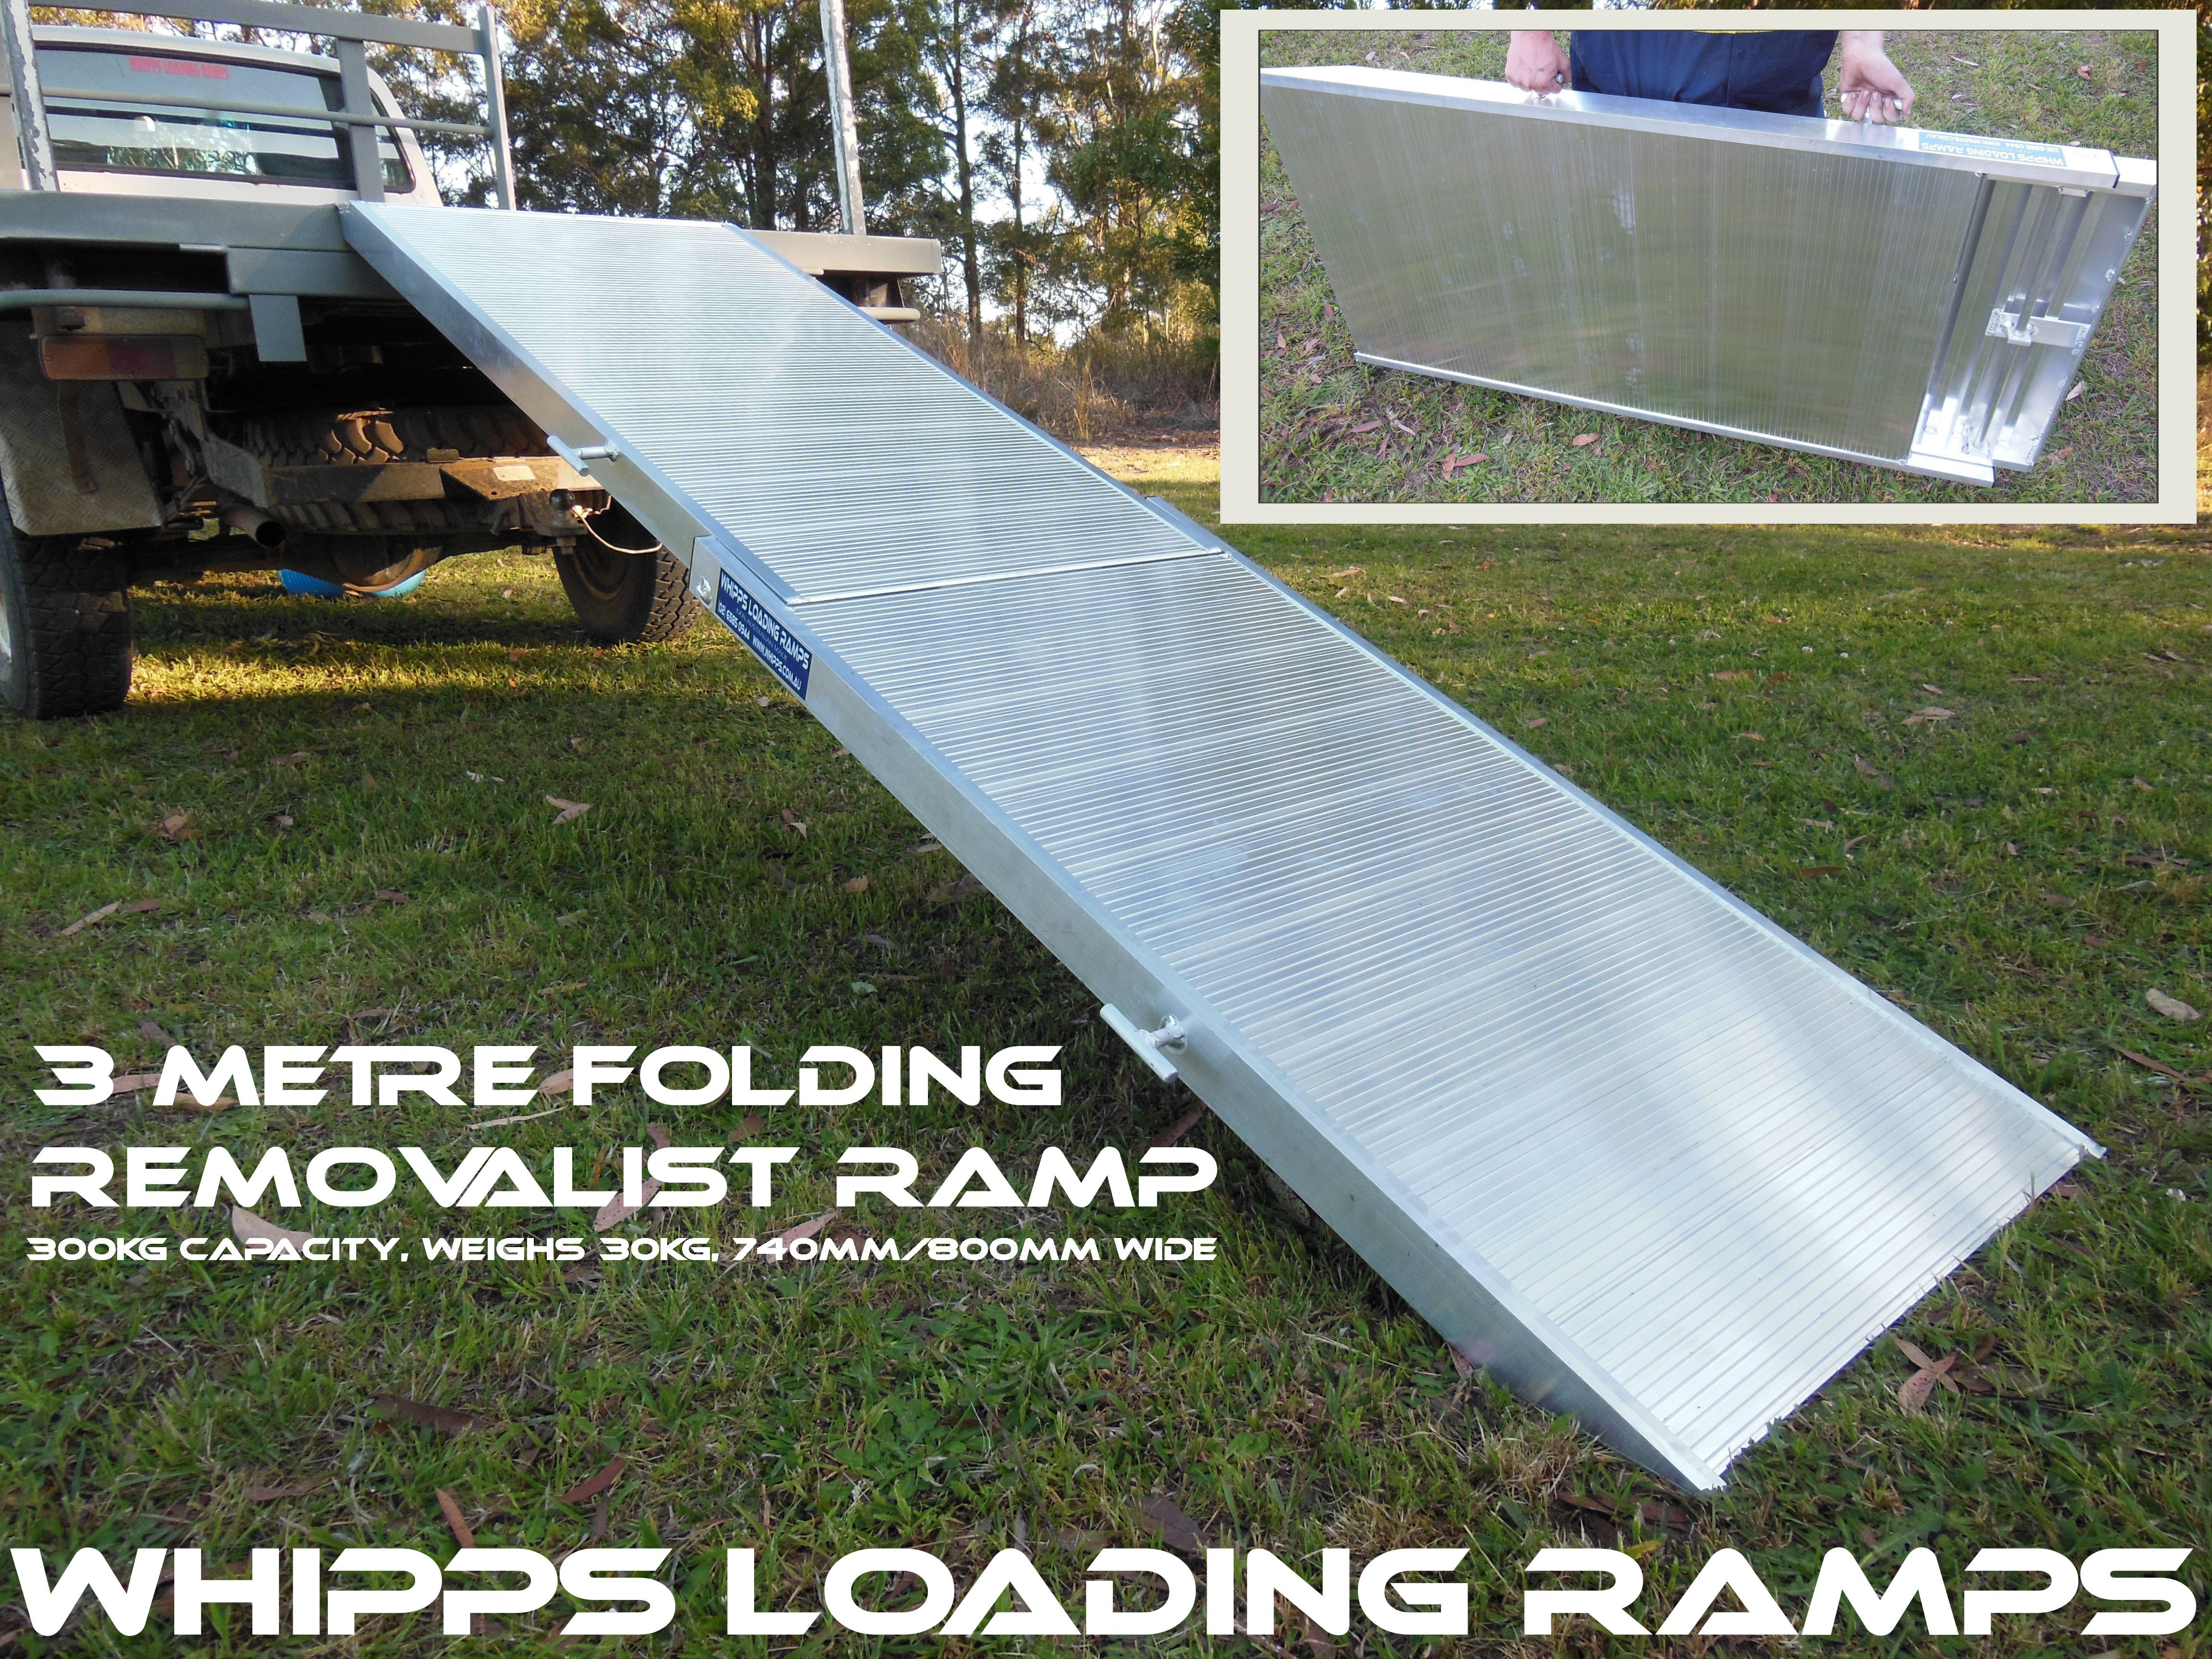 folding removalist, road case, sound equipment, fridge ramp